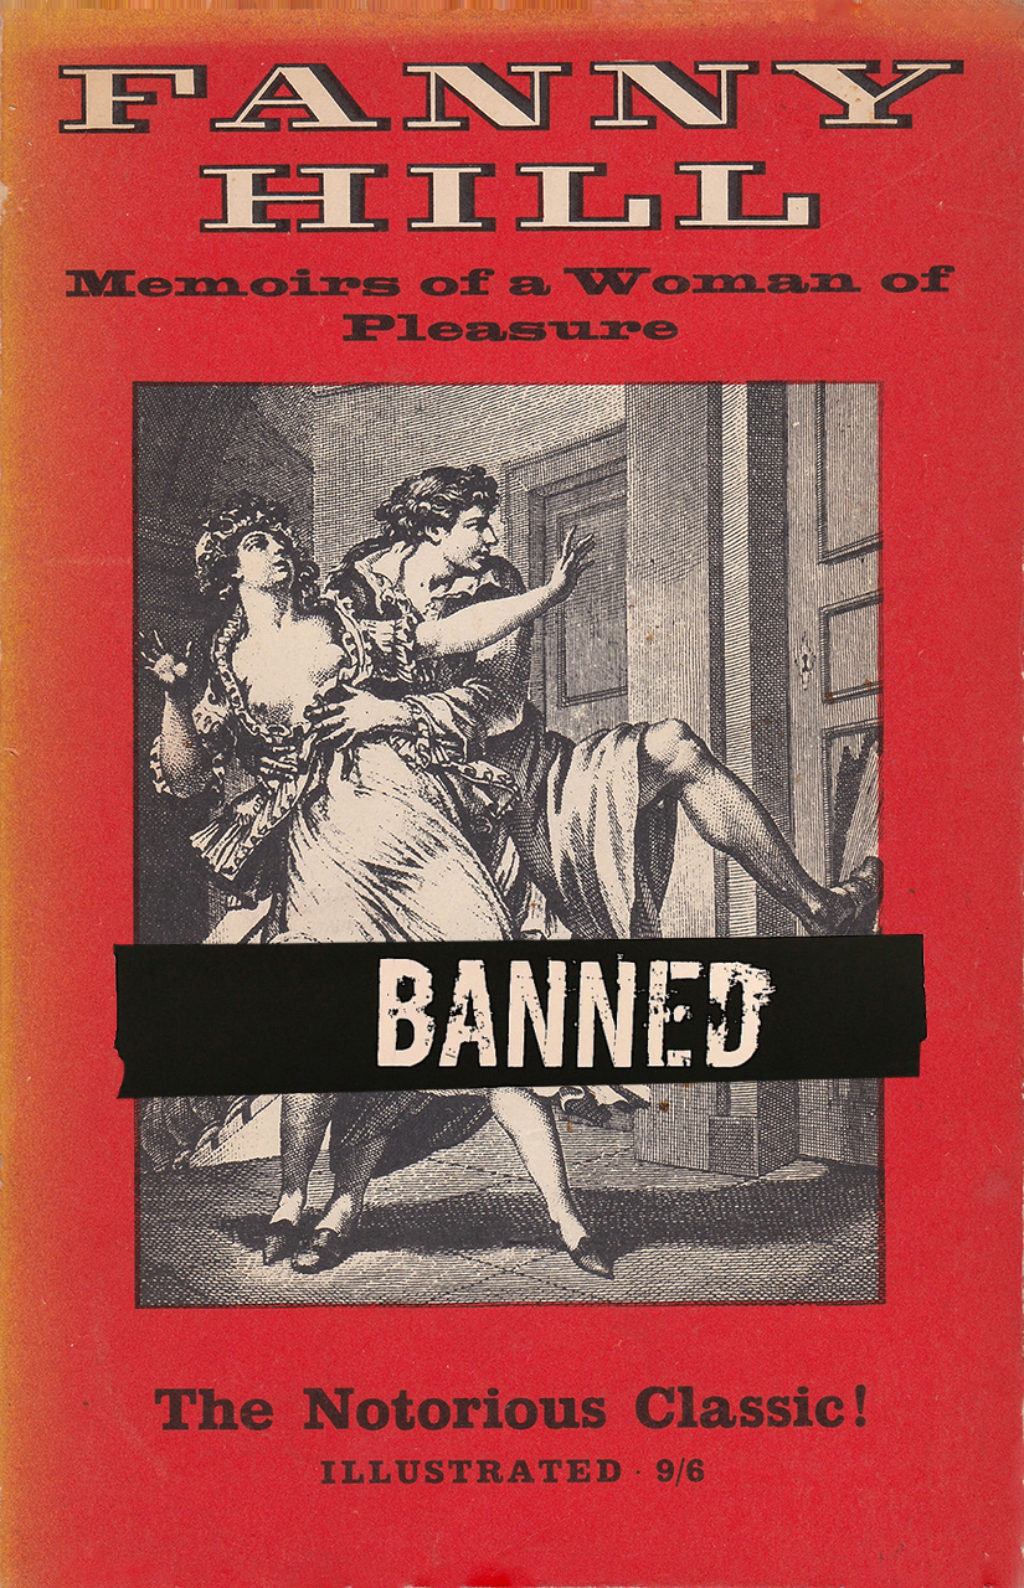 Fanny-Hill-Memoirs-of-a-woman-of-pleasure-London-Luxor-Press-1964-banned